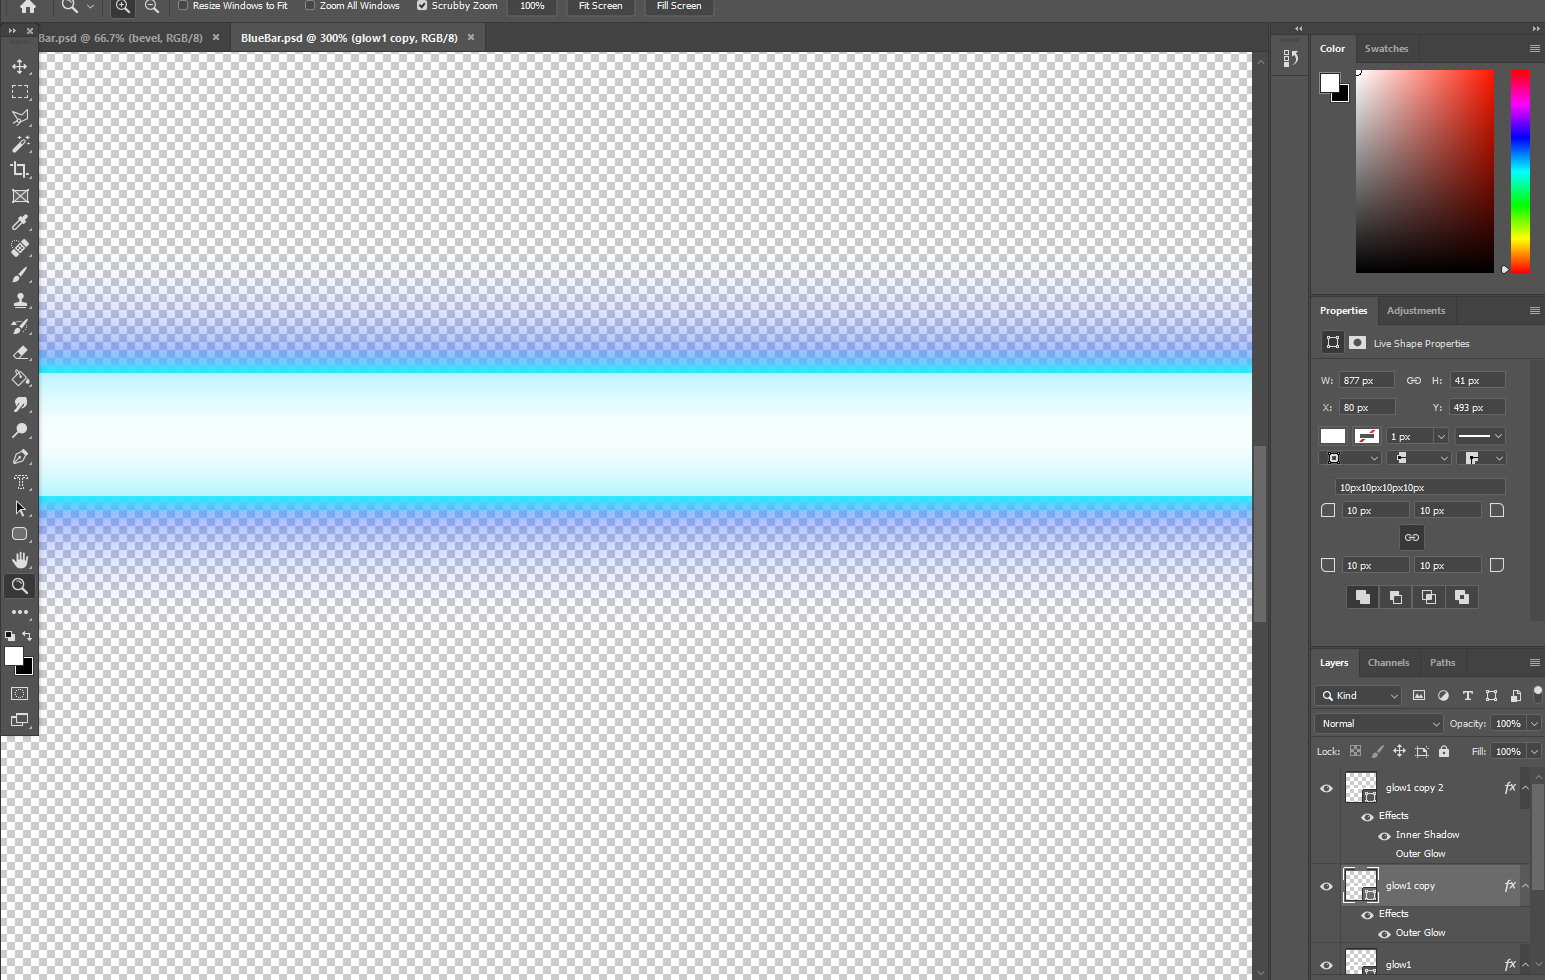 Why dose unity change the colors of my Photoshop files